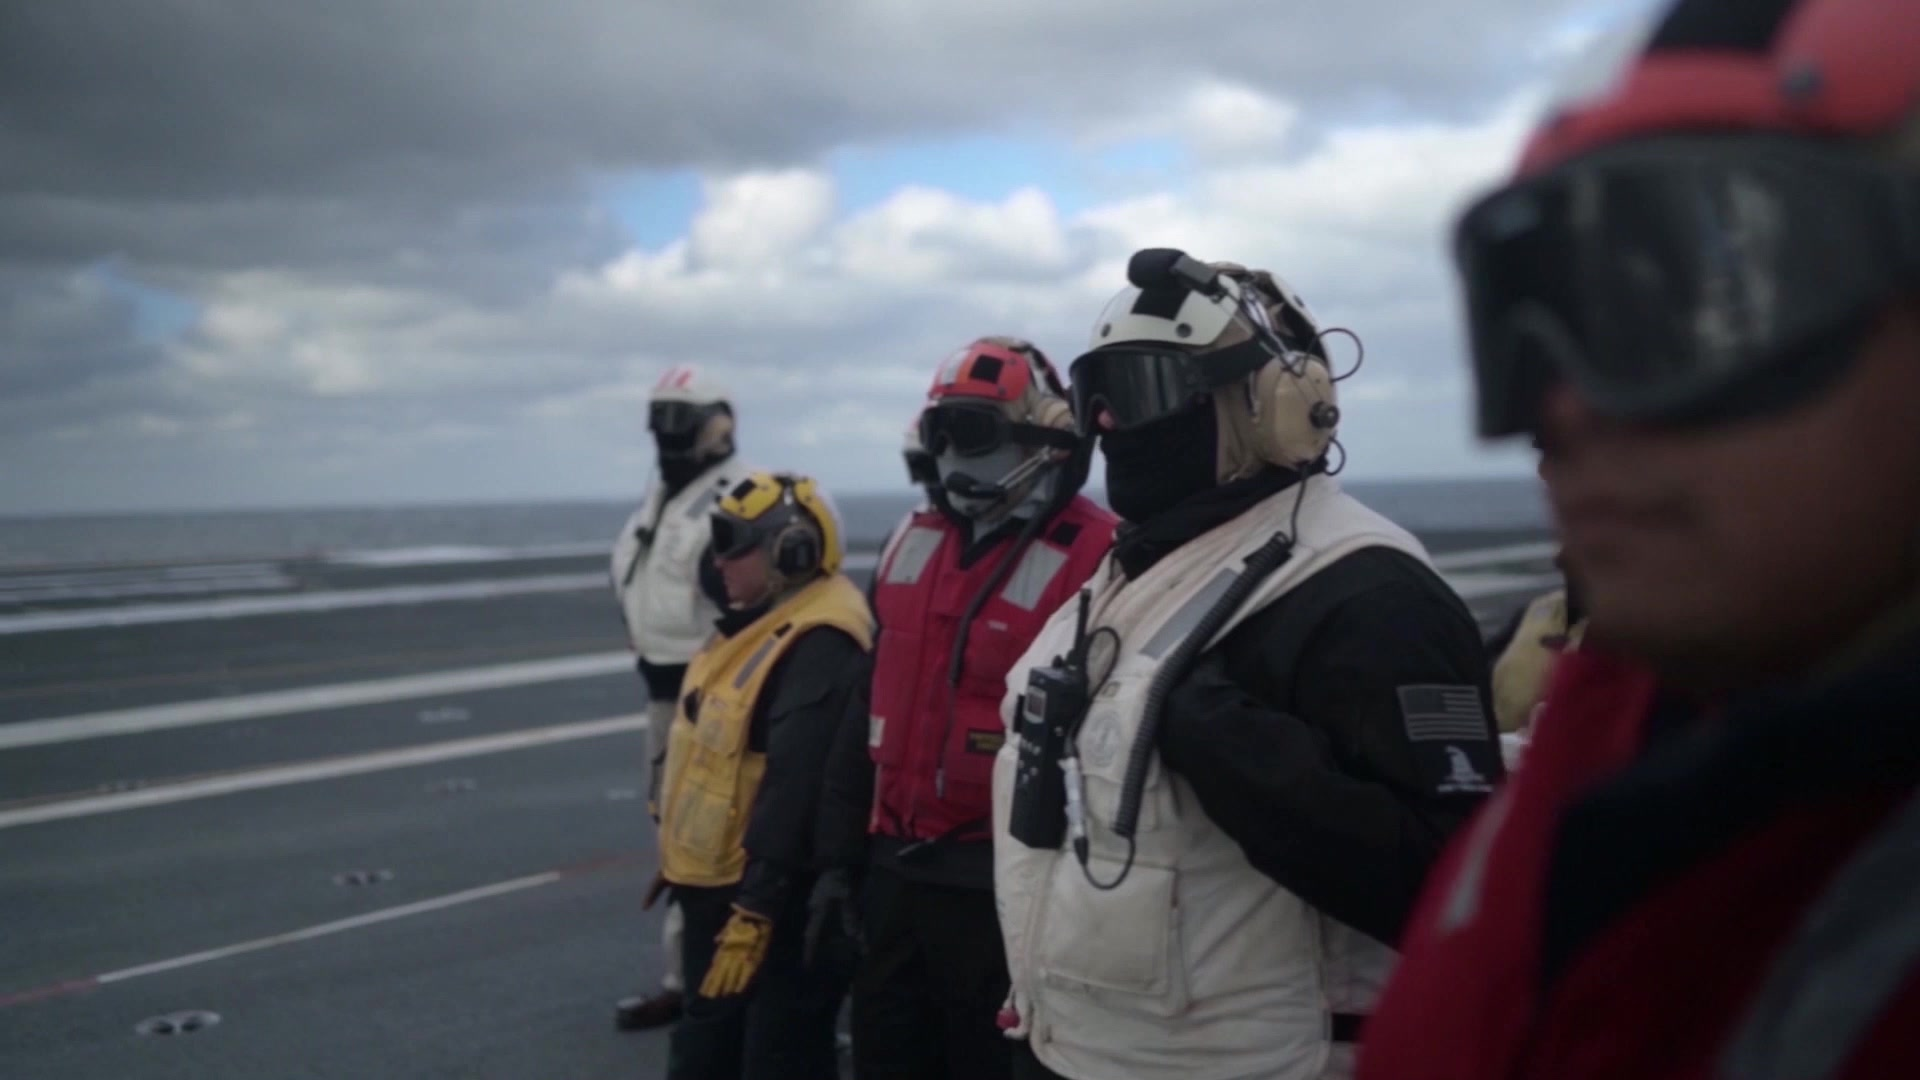 Becoming a Navy Chief is a culmination of steadfast devotion and self-discipline learning, leading with character, and honing professional expertise.